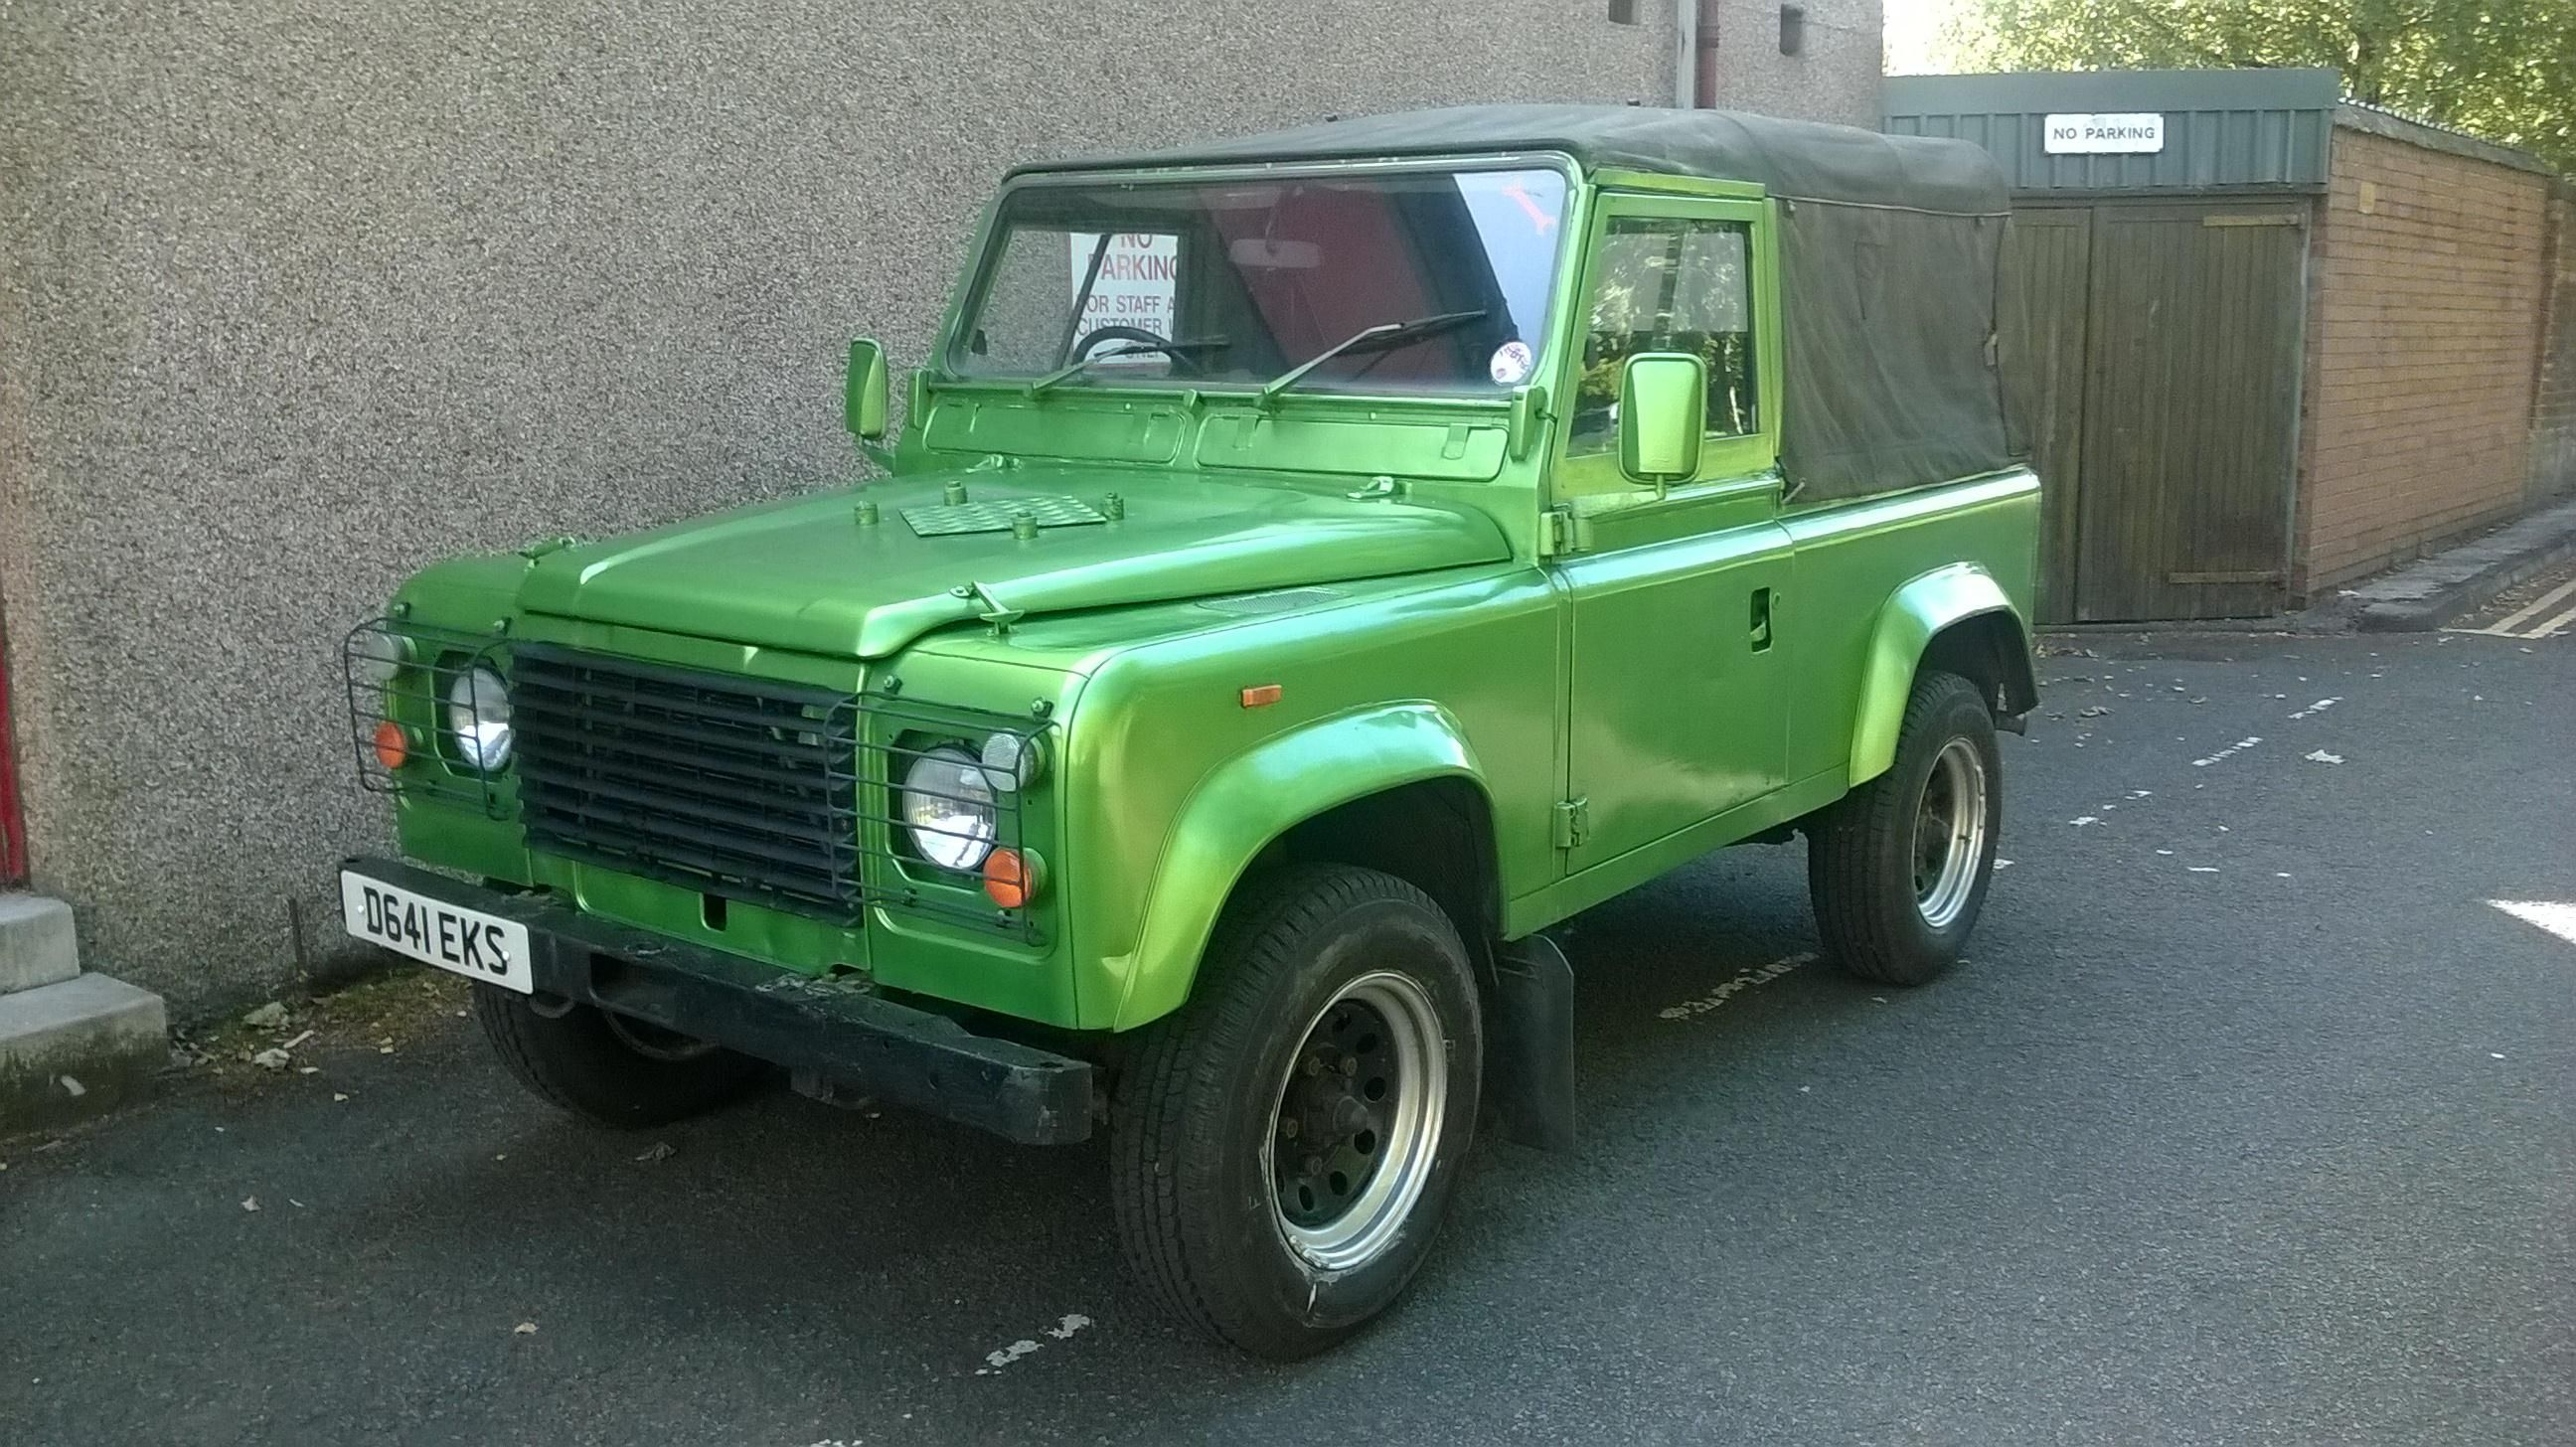 reg sale rovers model lady used for driver land rover cars discovery sd classifieds just serviced pistonheads in uk landrover facelift xs